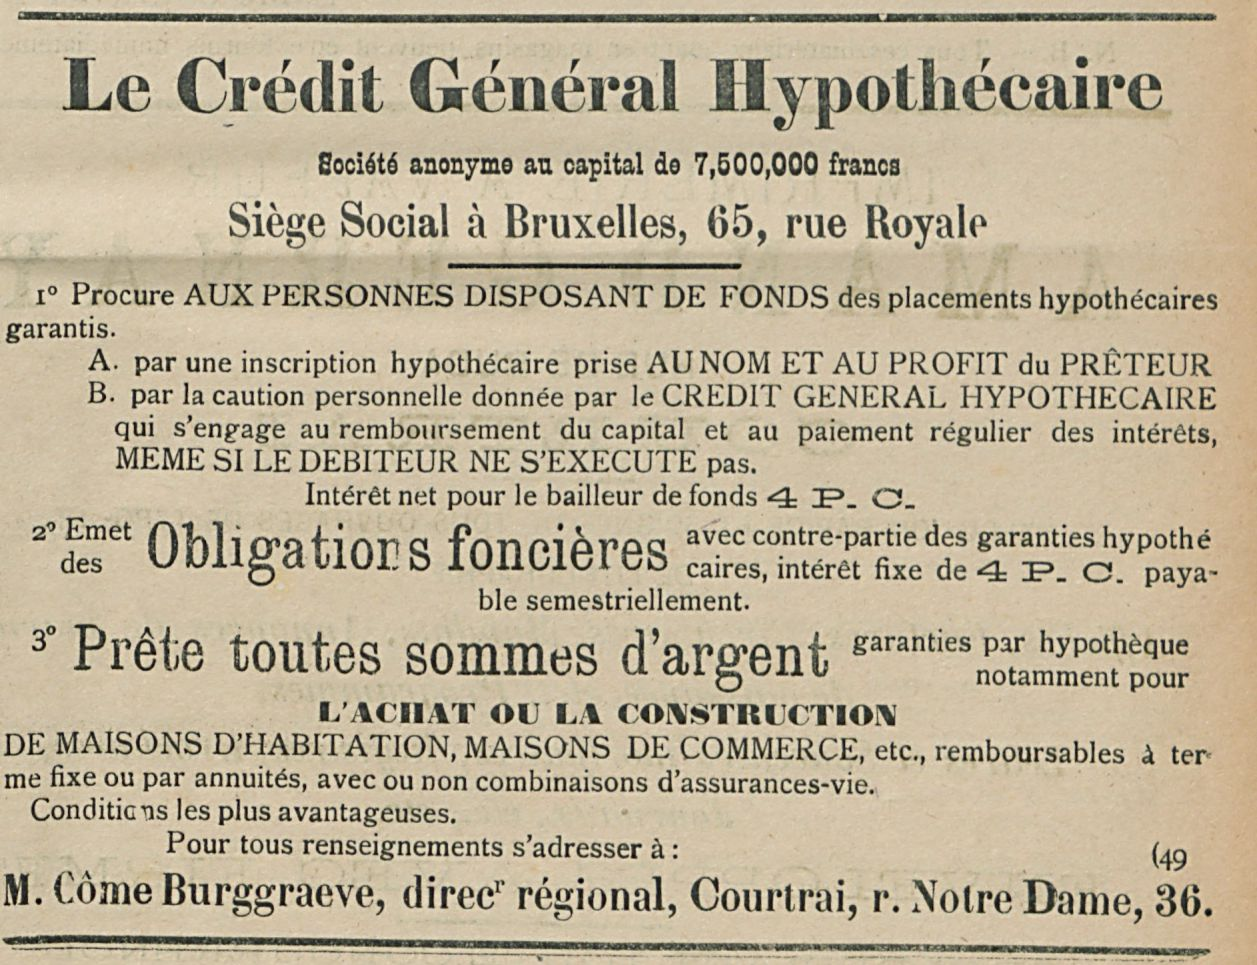 Le Credit General Hypothecate